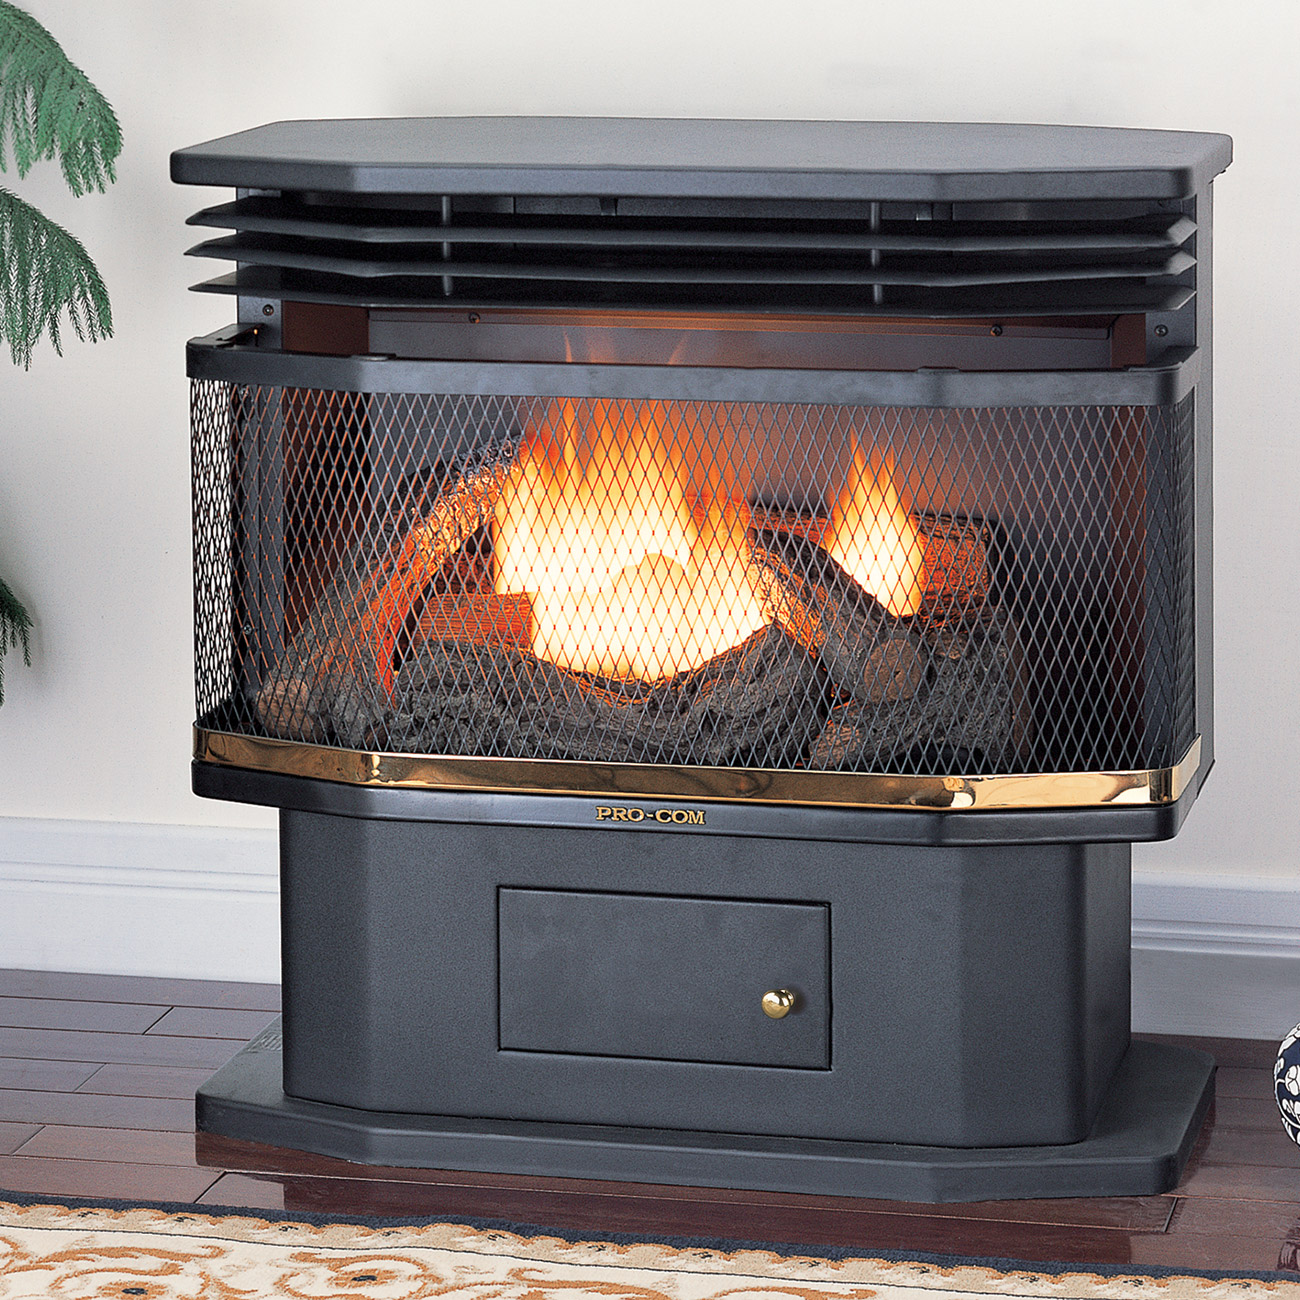 stove gas enviro strathroy london stoves fireplace home ontario sarnia safe